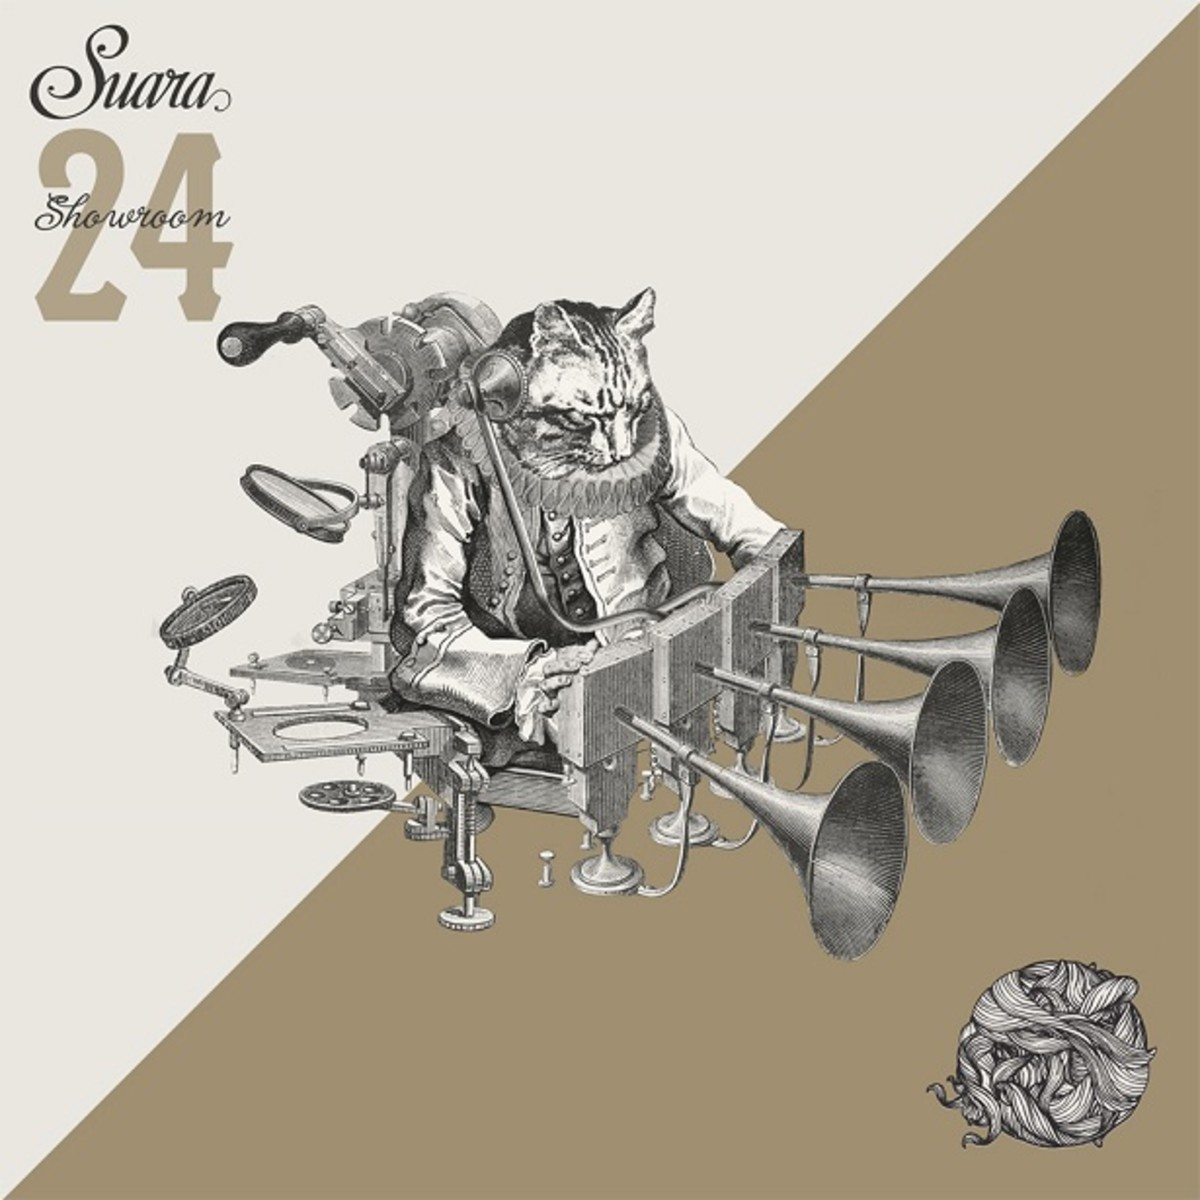 Exclusive Premiere: Suara Showroom 24 Feat Adrian Hour, Marcos In Dub, & More